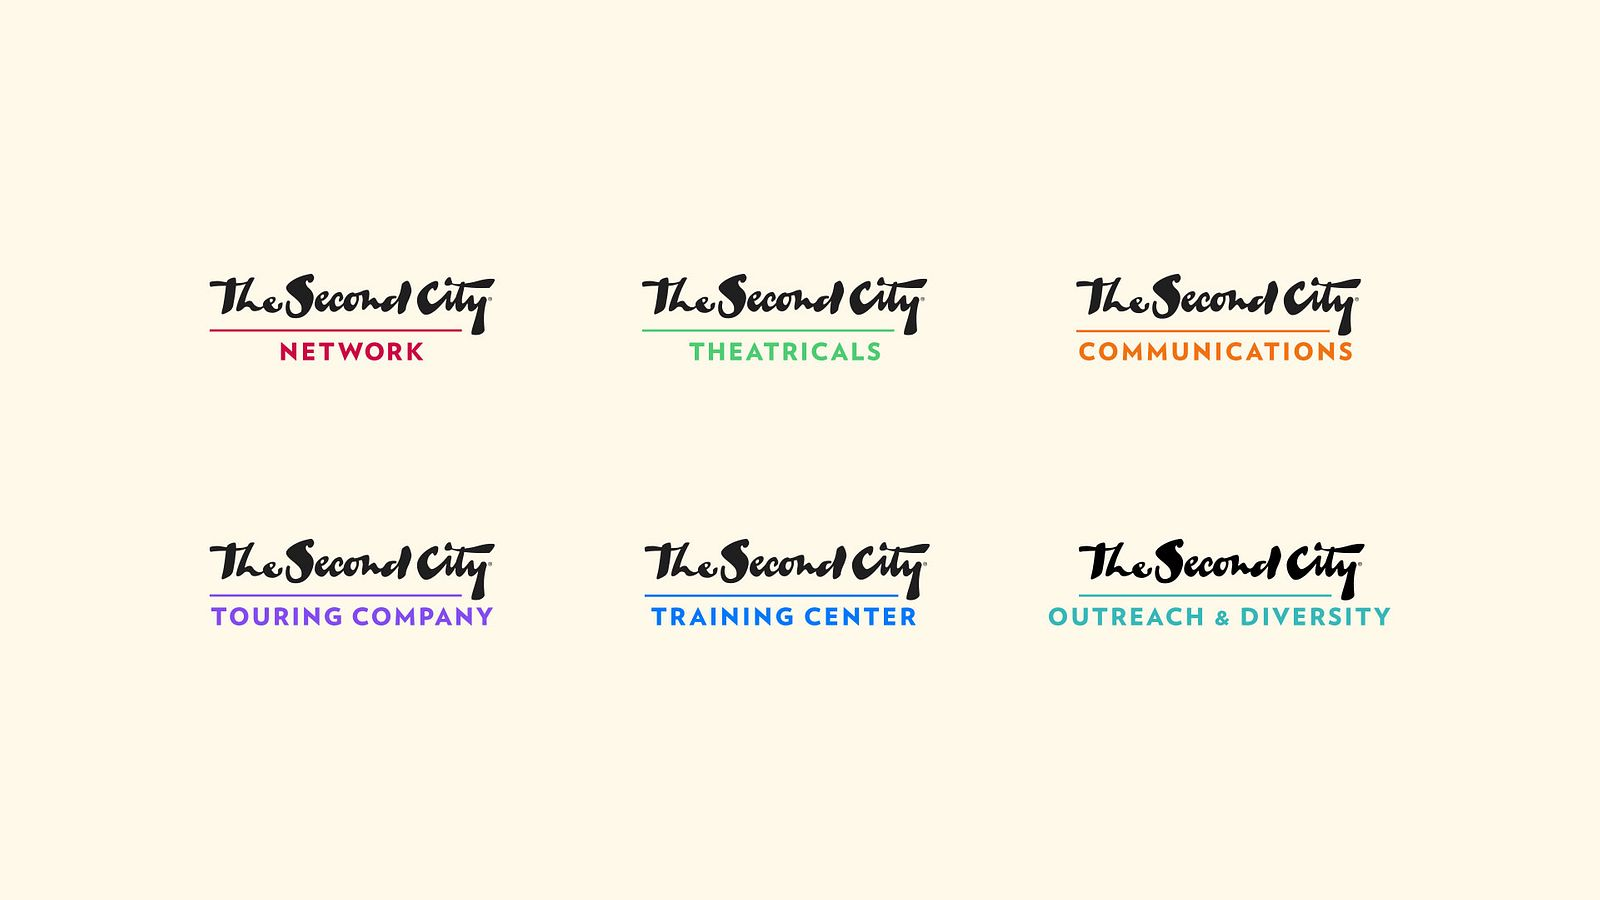 The Second City logos and sub-brands, designed and organized by Someoddpilot